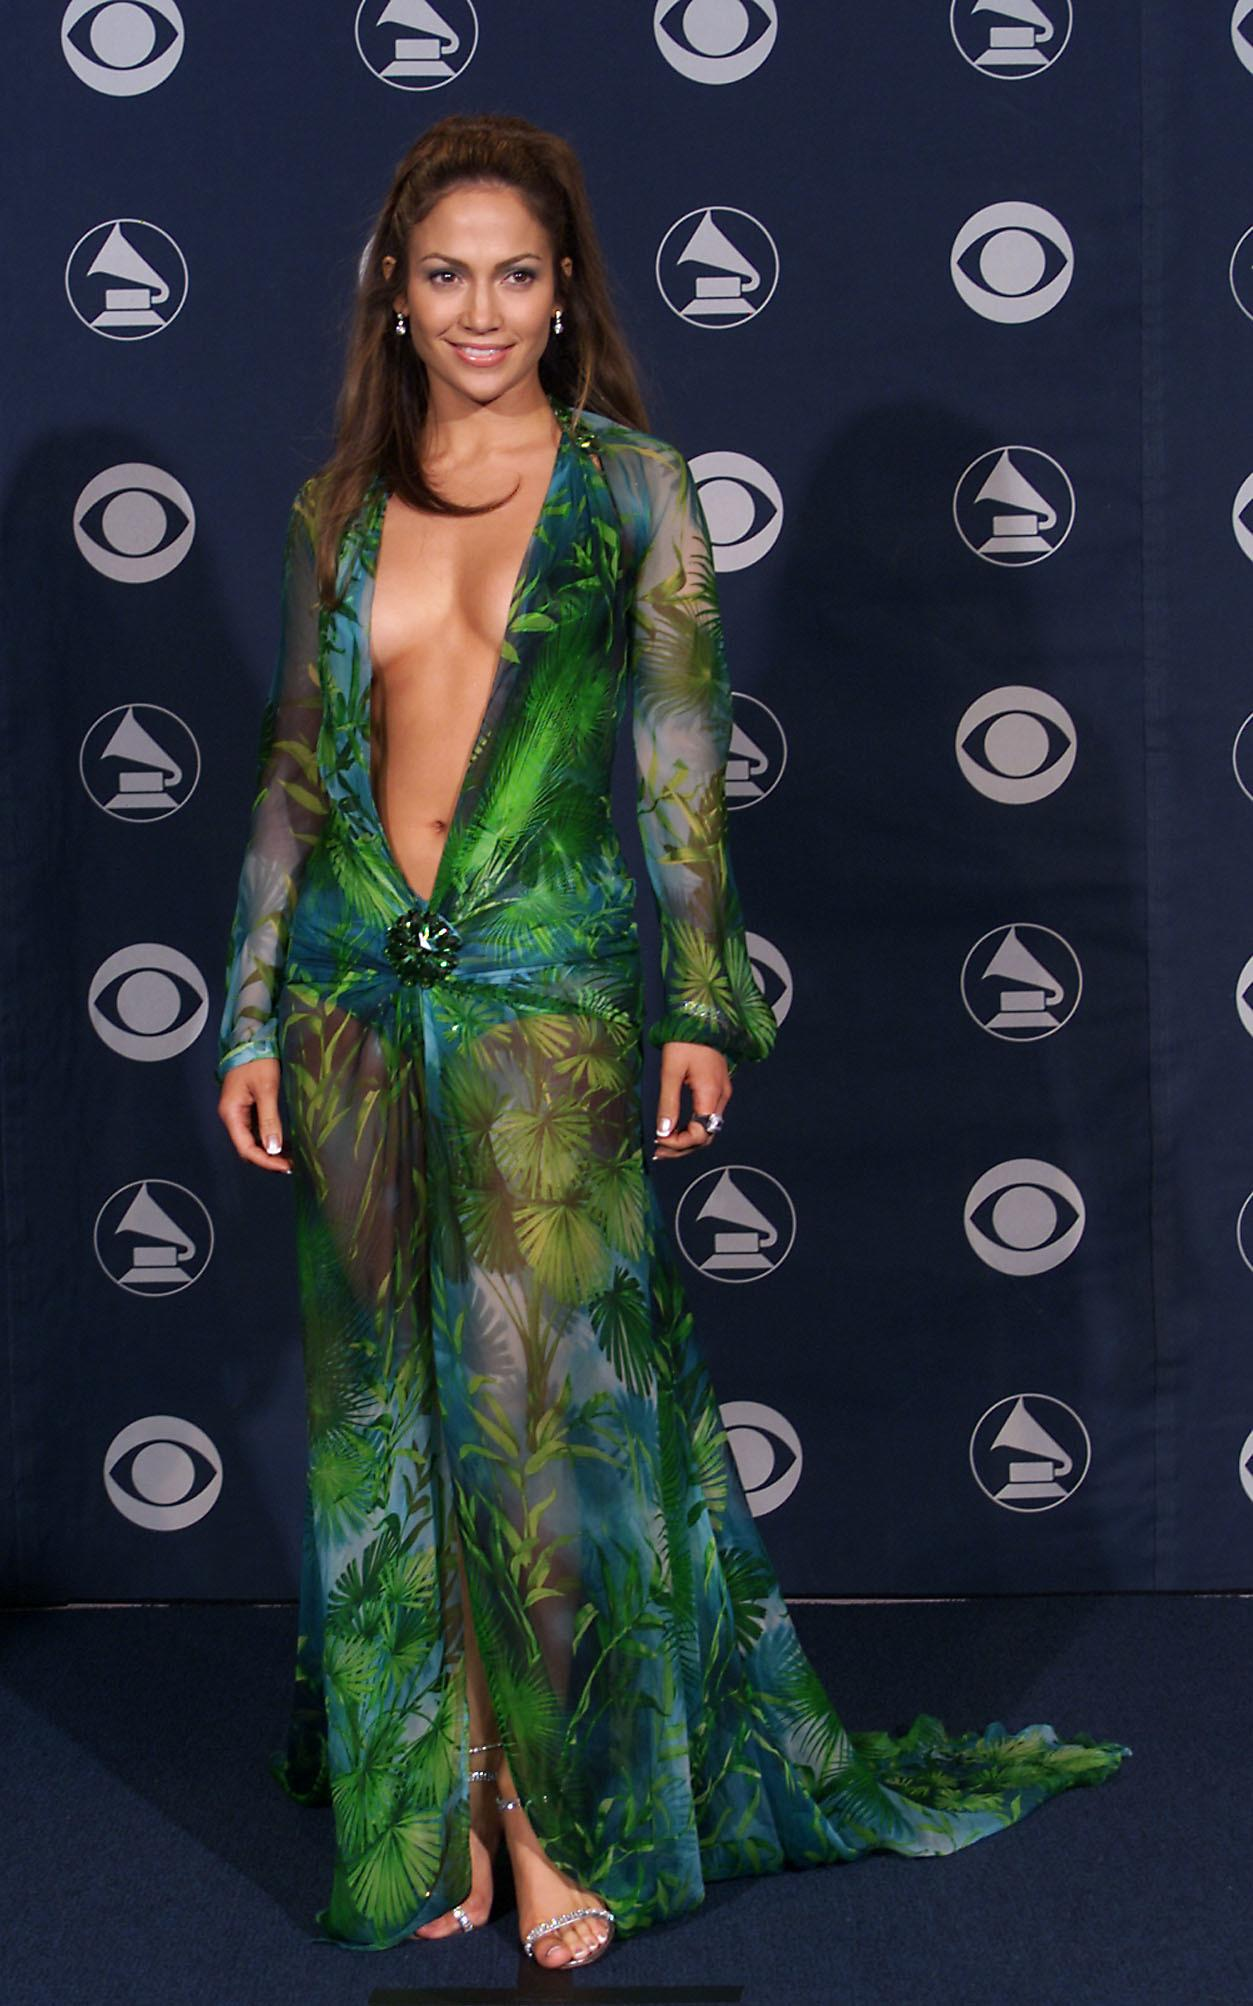 Jennifer Lopez in Versace at the 42nd Grammy Awards held in Los Angeles, CA on Febuary 23, 2000  Photo by Scott Gries/ImageDirect